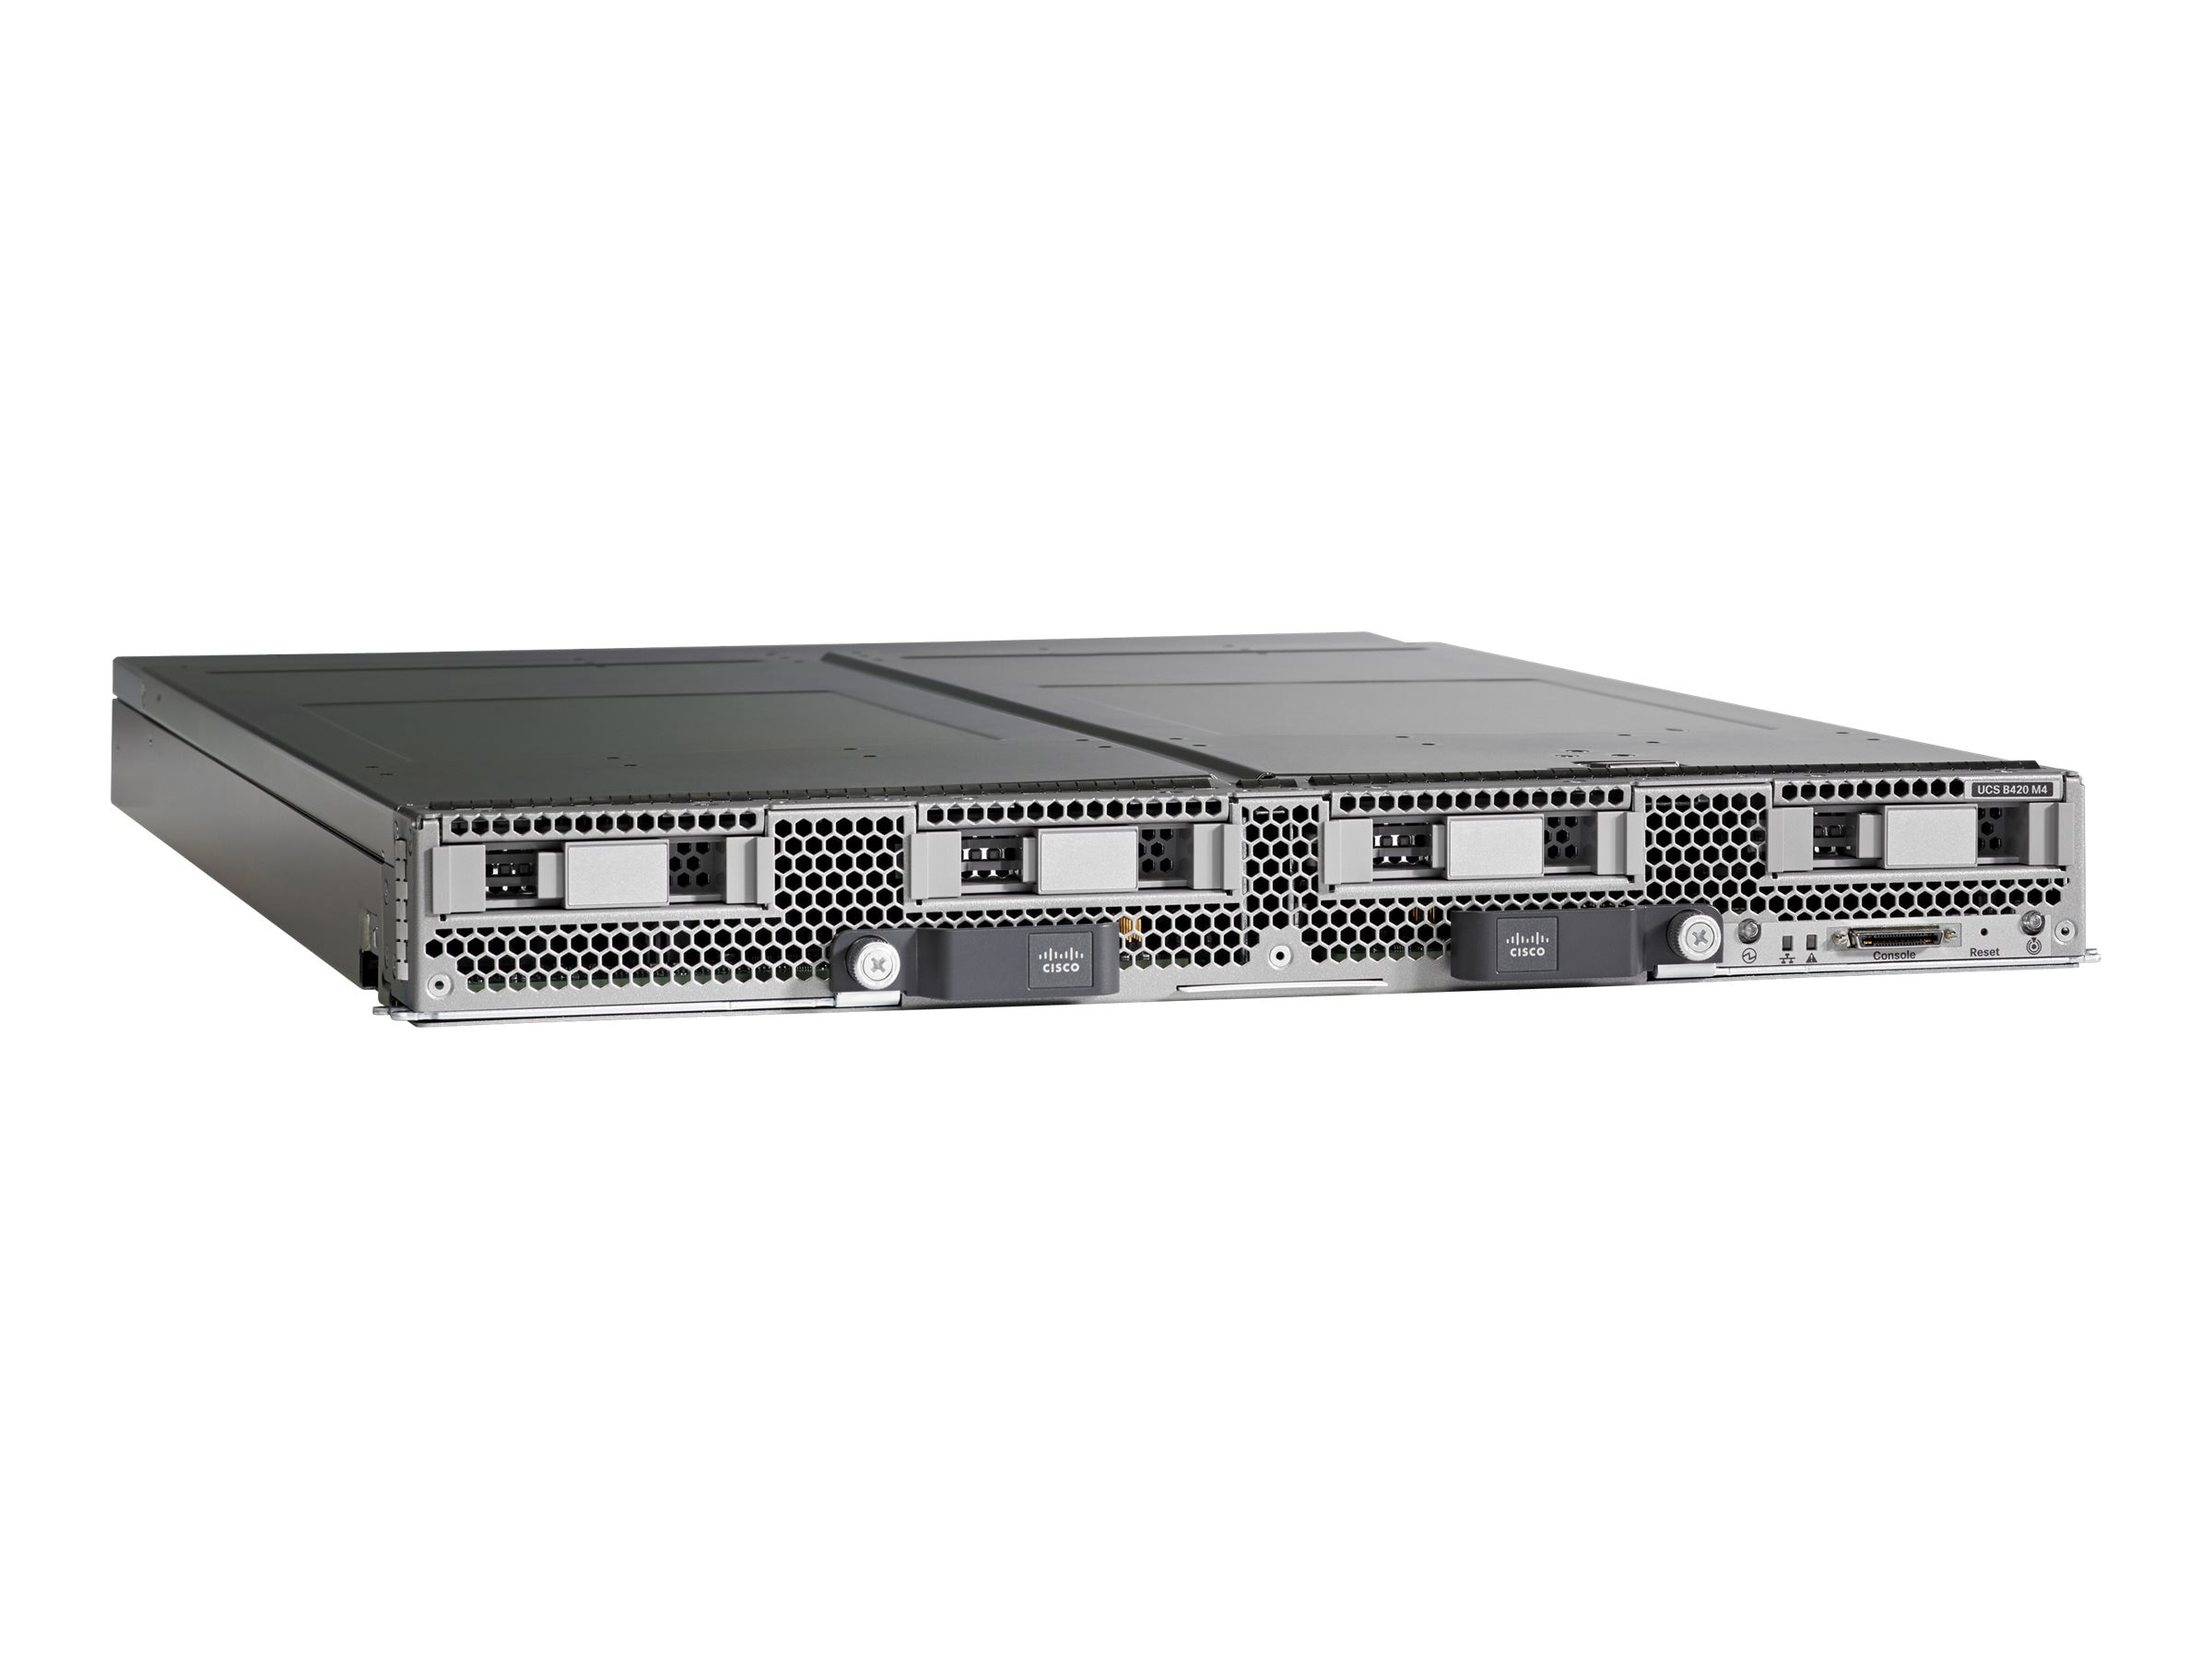 Cisco UCSB-B420-M4-U Image 2